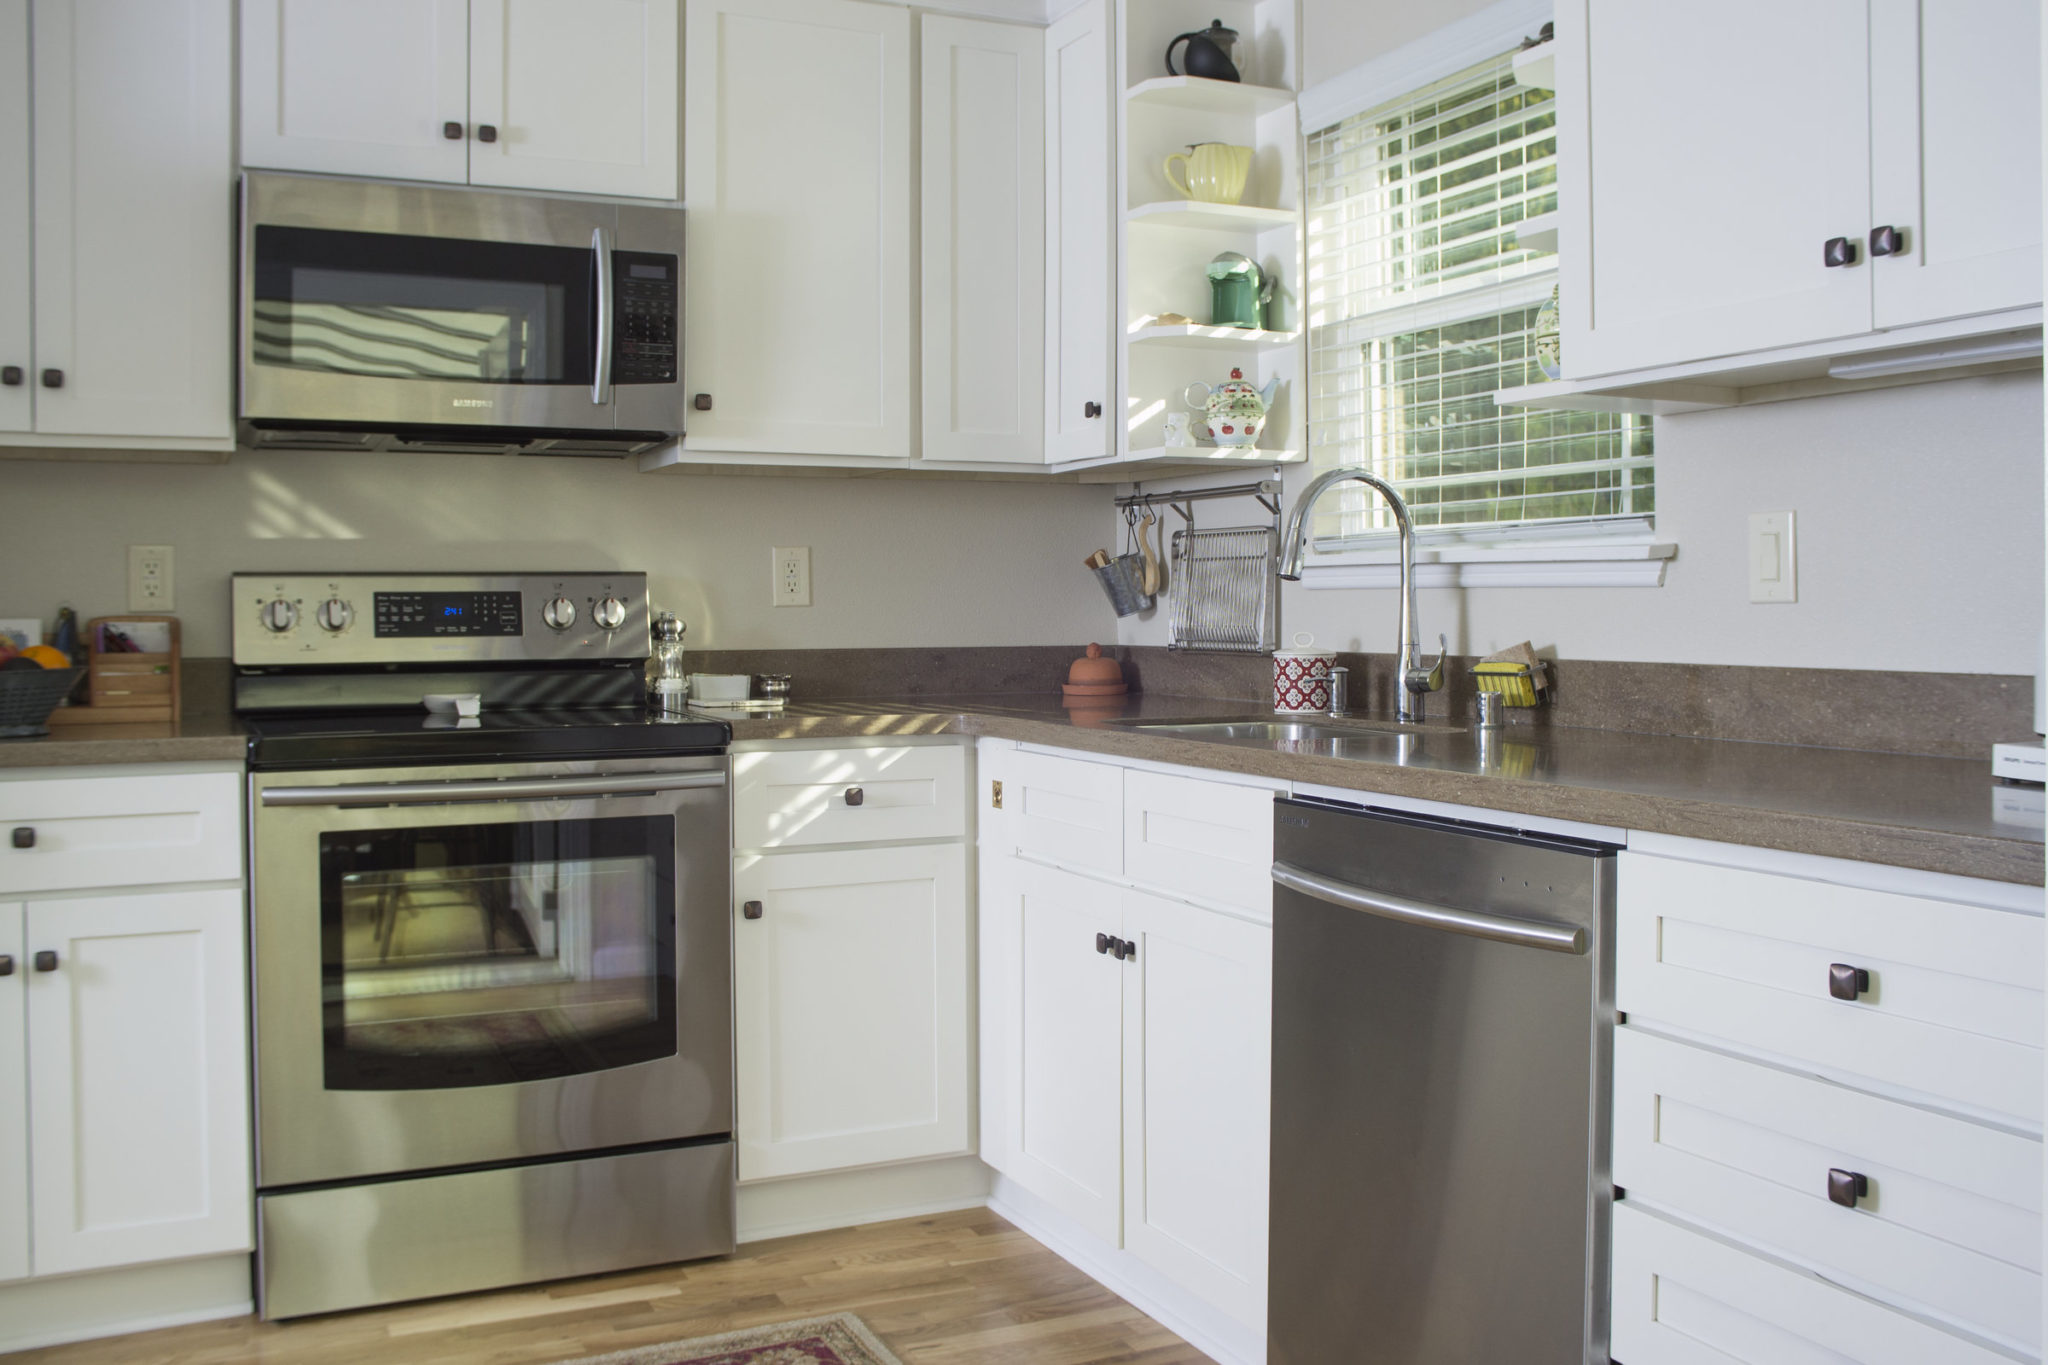 Bright Kitchen Cabinets White And Bright Kitchen Founder 39s Choice Cabinetry